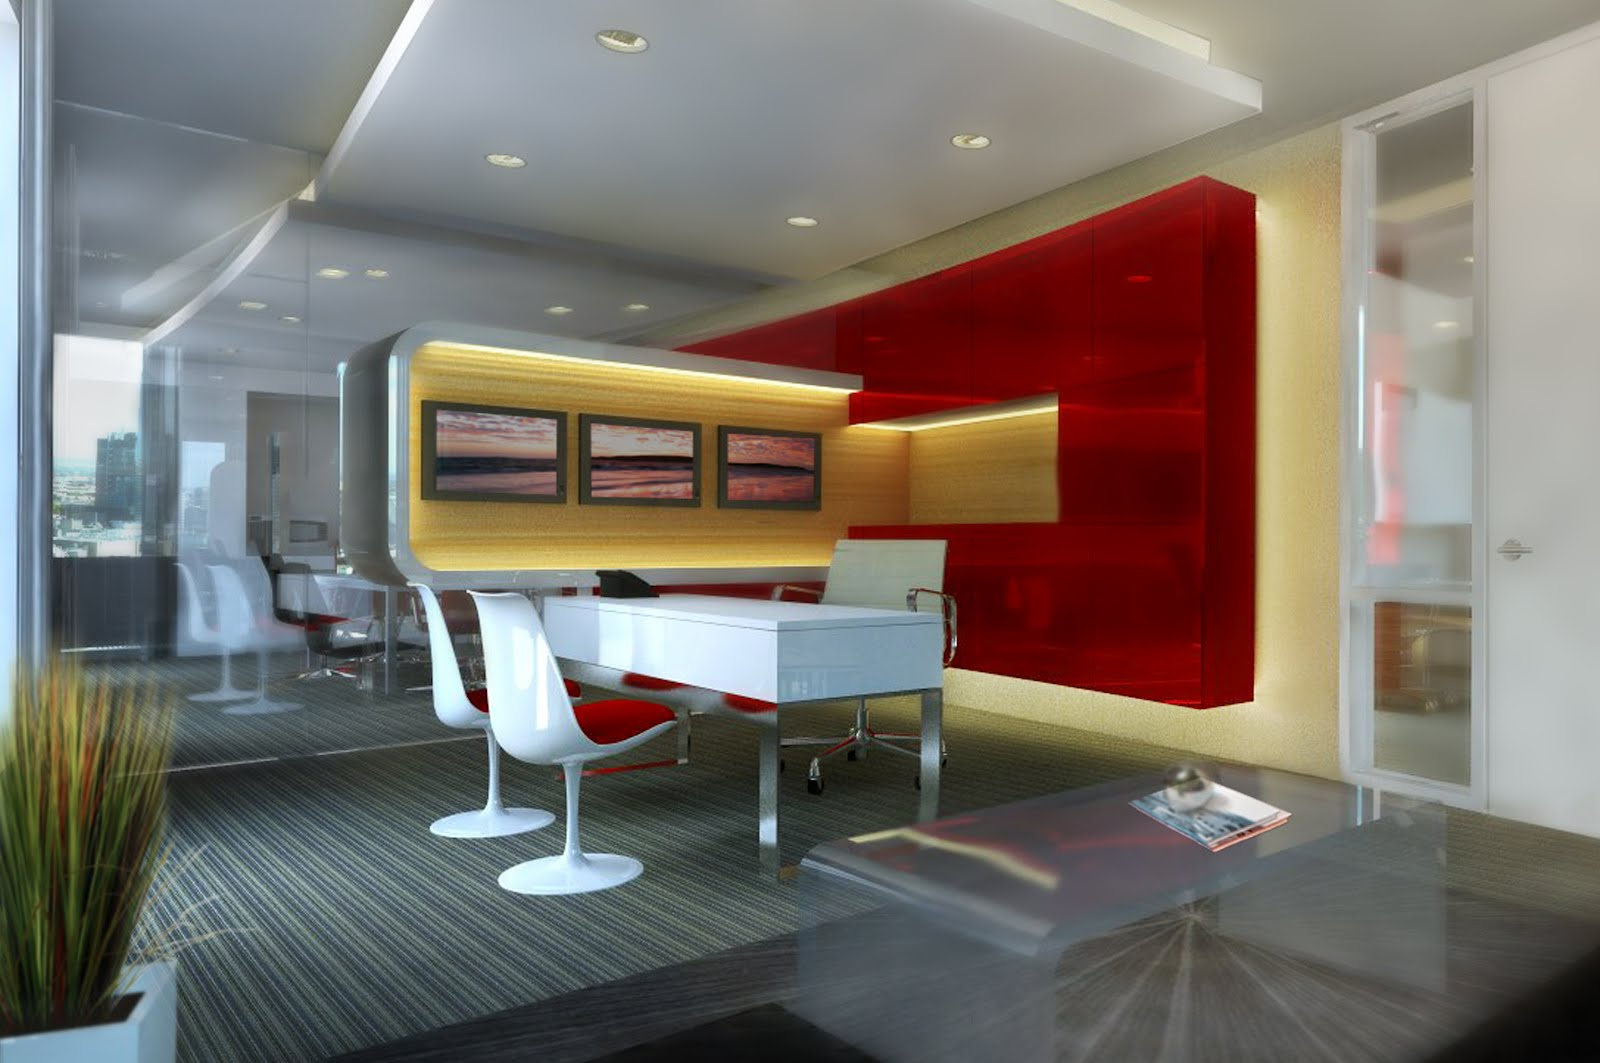 Proposed Scheme 1 Of The Executive Office Consists A High Gloss Built In Cabinet That Accentuates Curve Building Cool Corporate Elegance